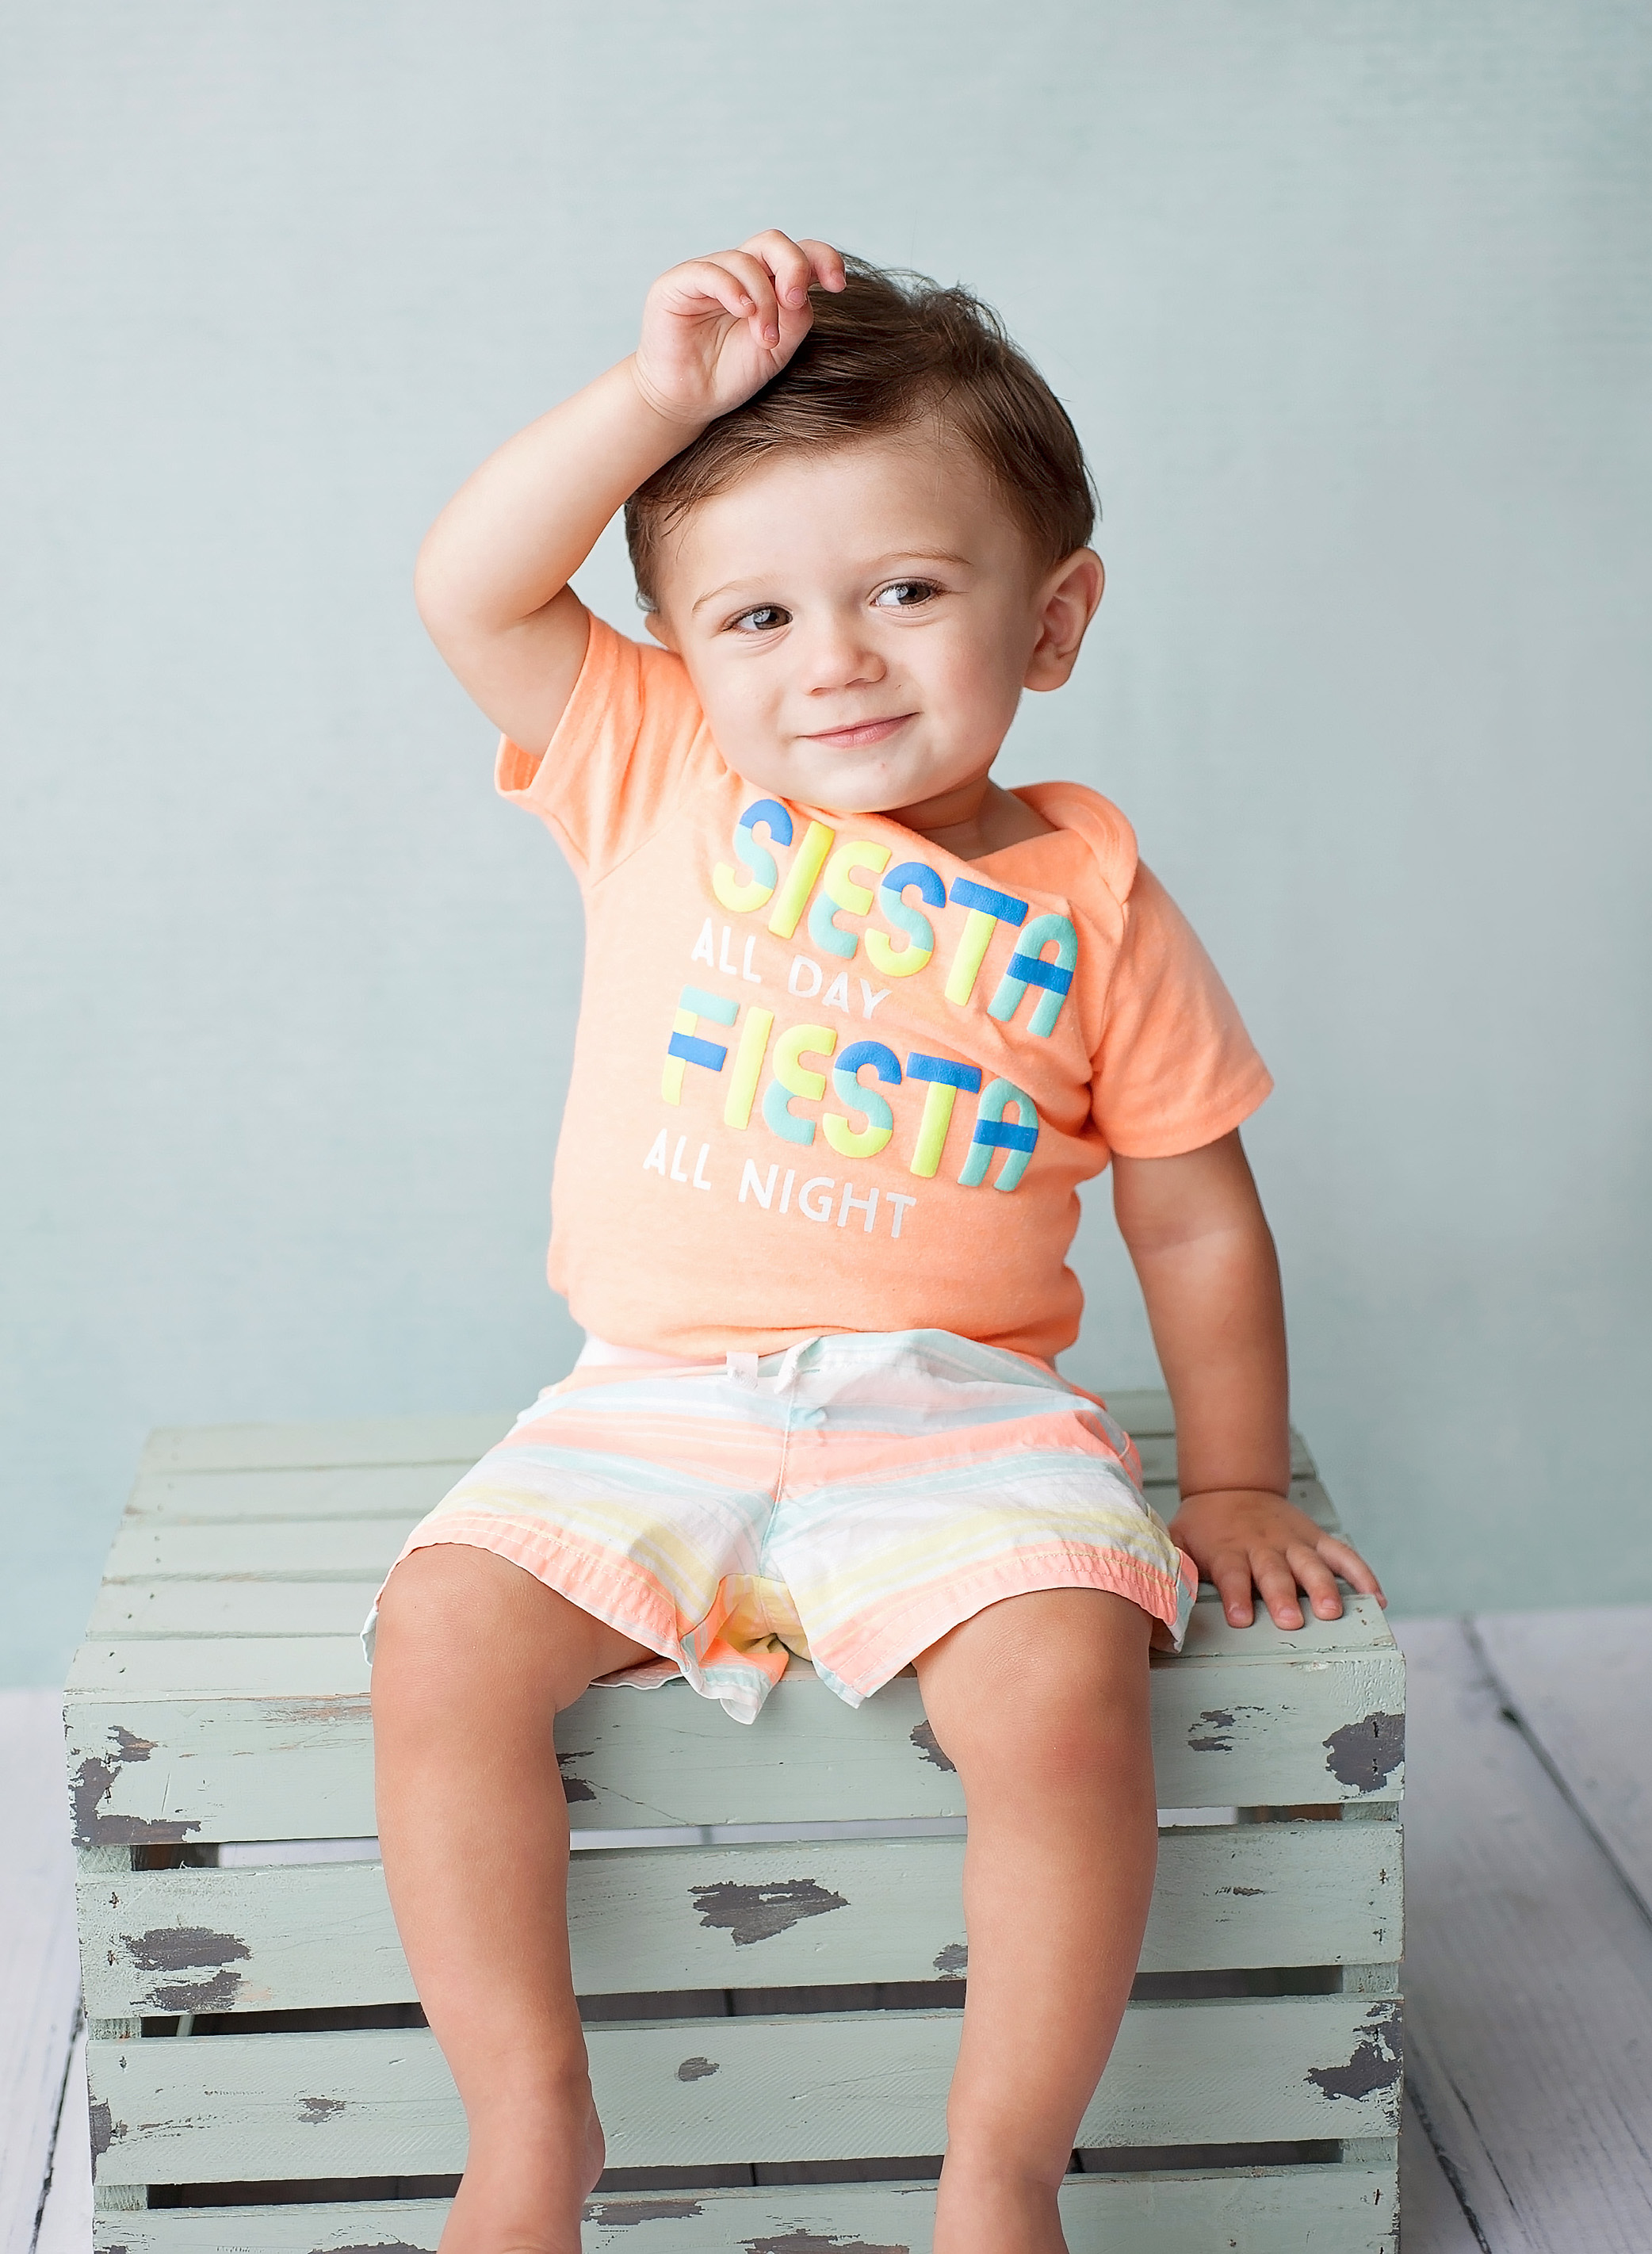 boy with orange shirt on sitting on blue stool